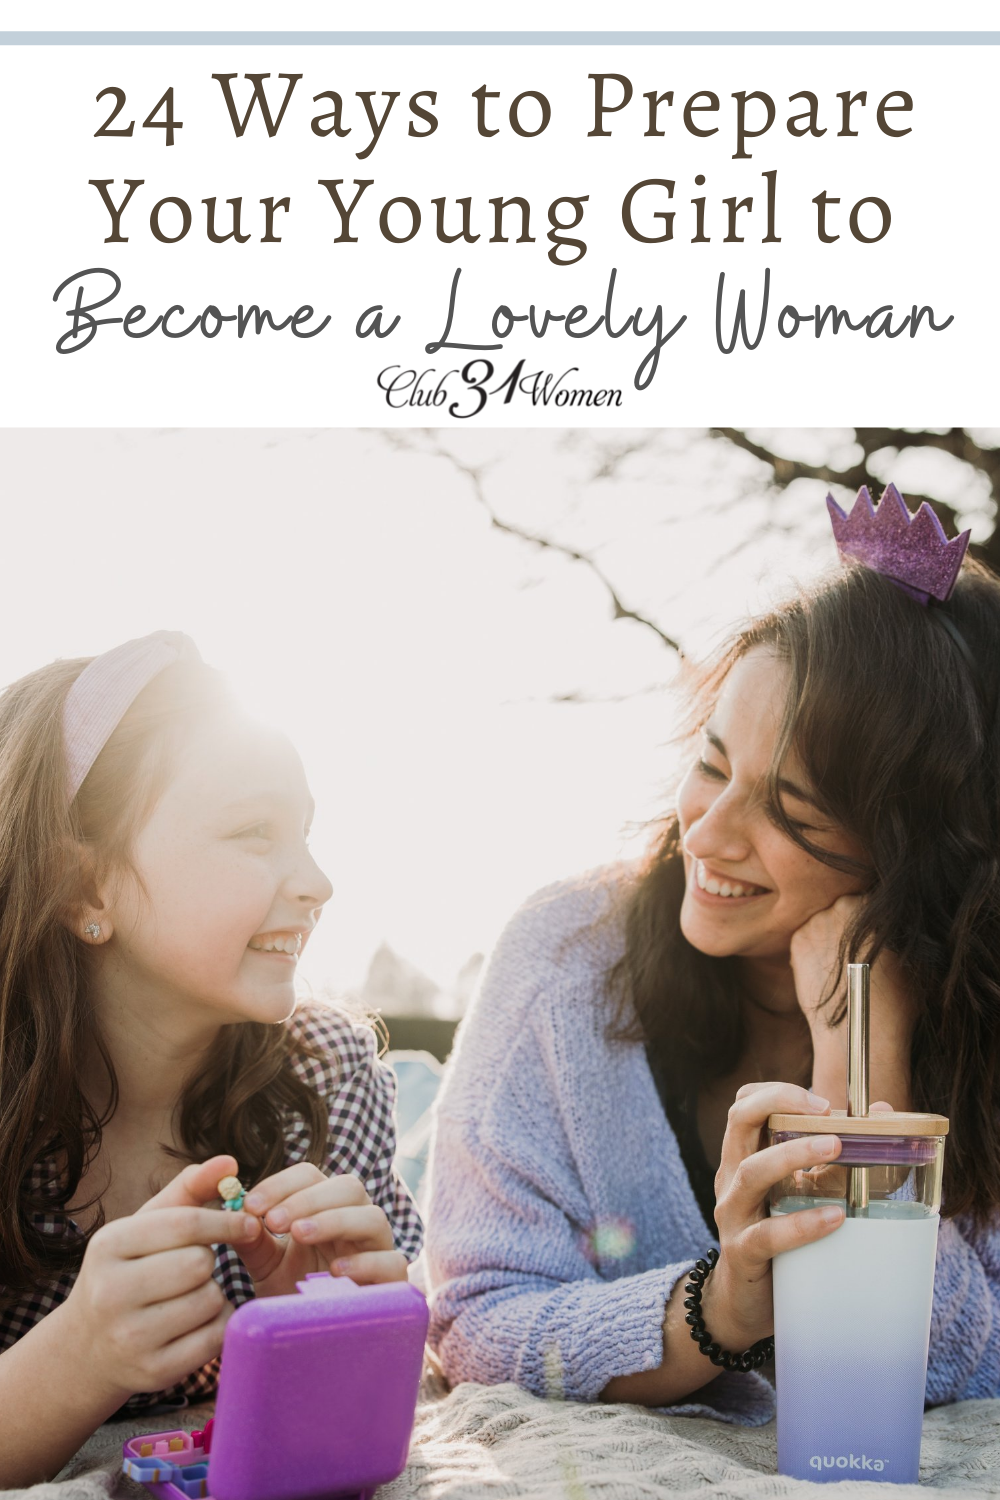 How do you prepare your girl to become a lovely young woman? To teach her about truth and beauty? Here's how to help her grow into beautiful womanhood! via @Club31Women